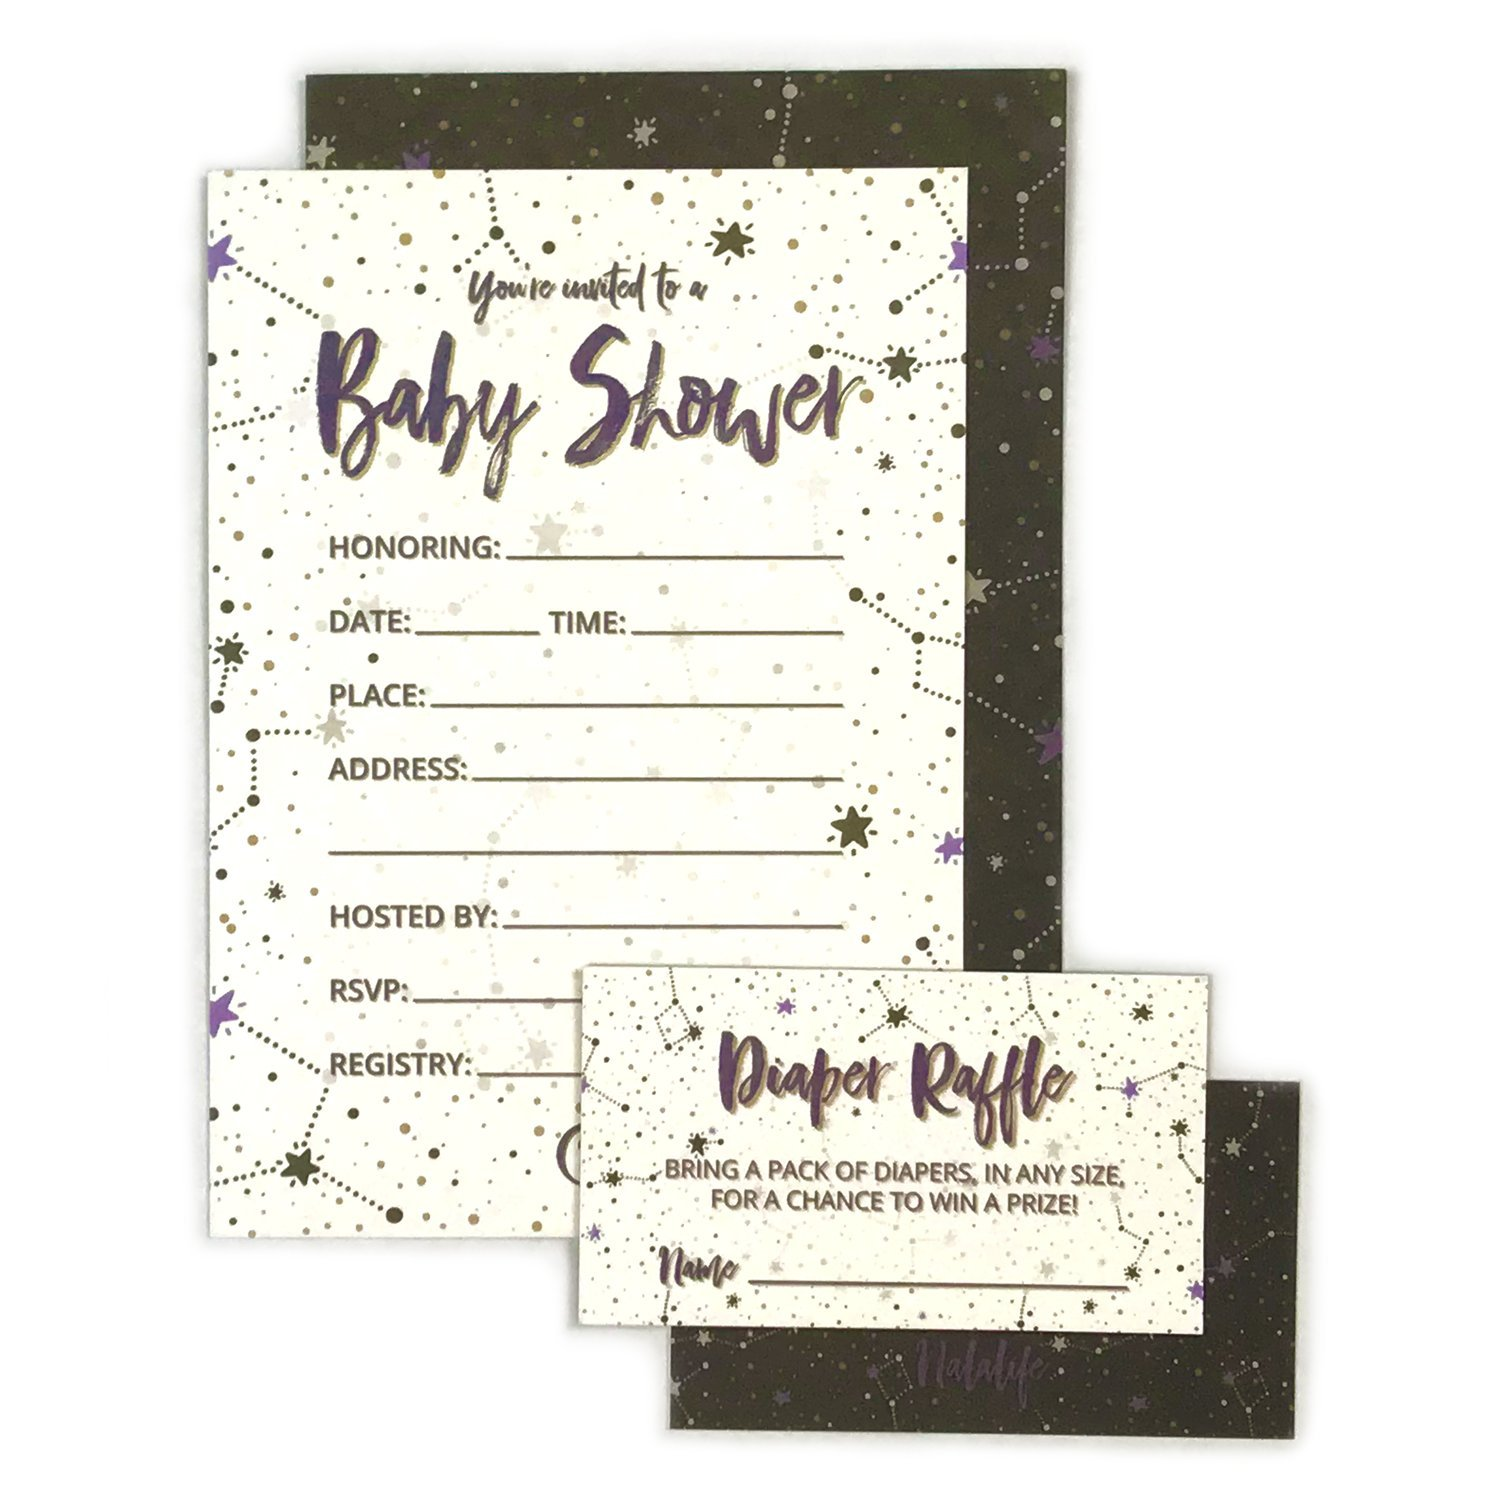 Twinkle Twinkle Little Star Baby Shower Invitations with Diaper Raffle Tickets for Boy and Girl - Set of 25 Party Invites - by Nalalife